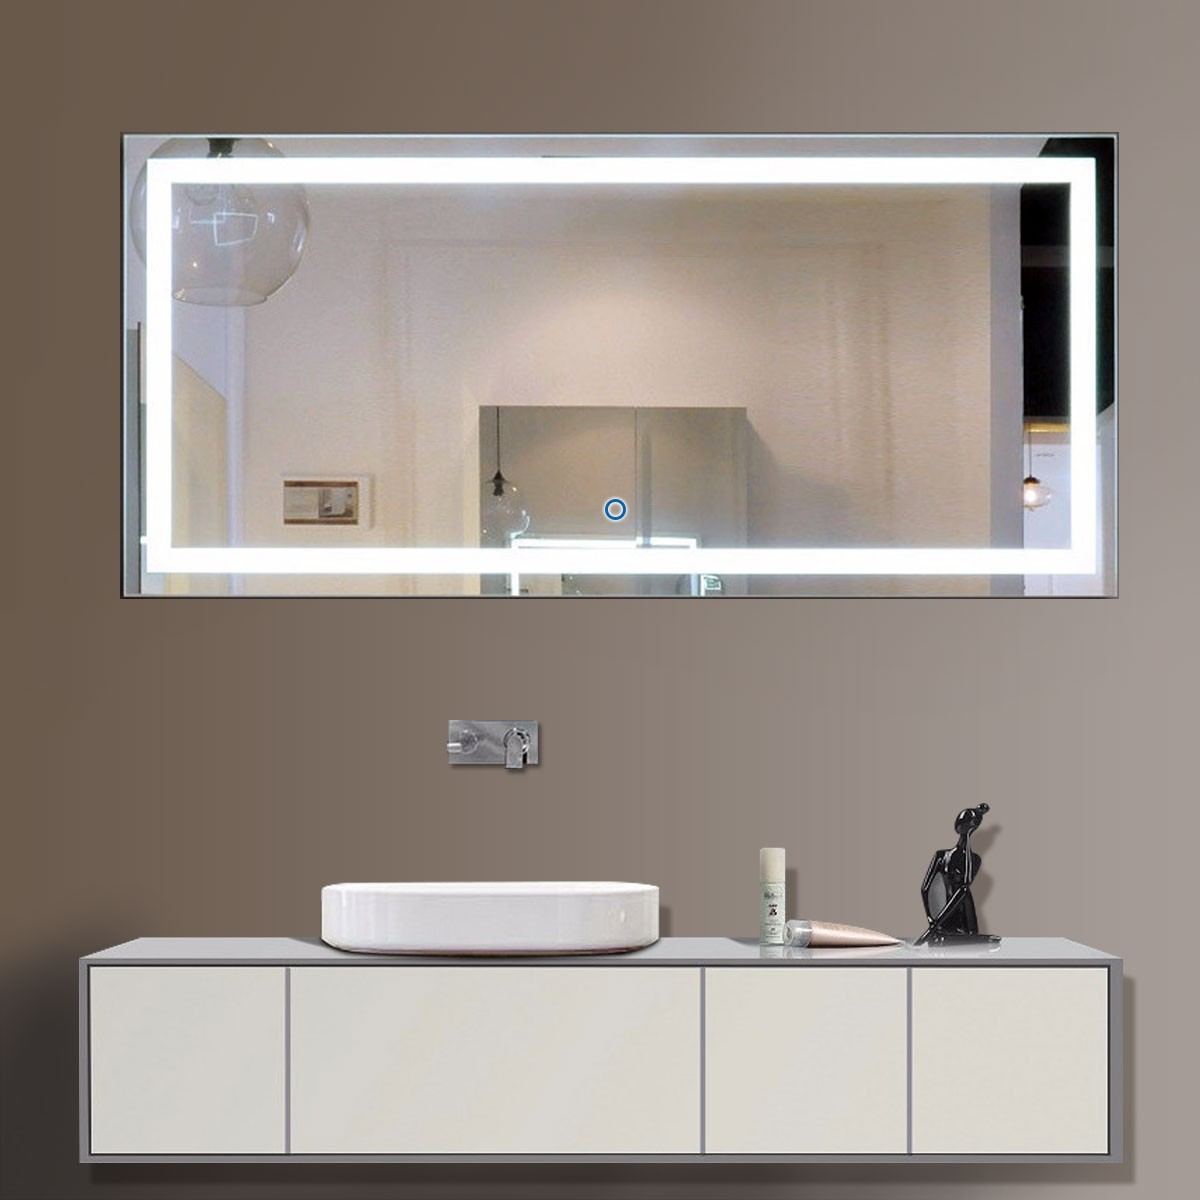 60 Inch Bathroom Mirror 60 X 28 In Horizontal Led Bathroom Silvered Mirror With